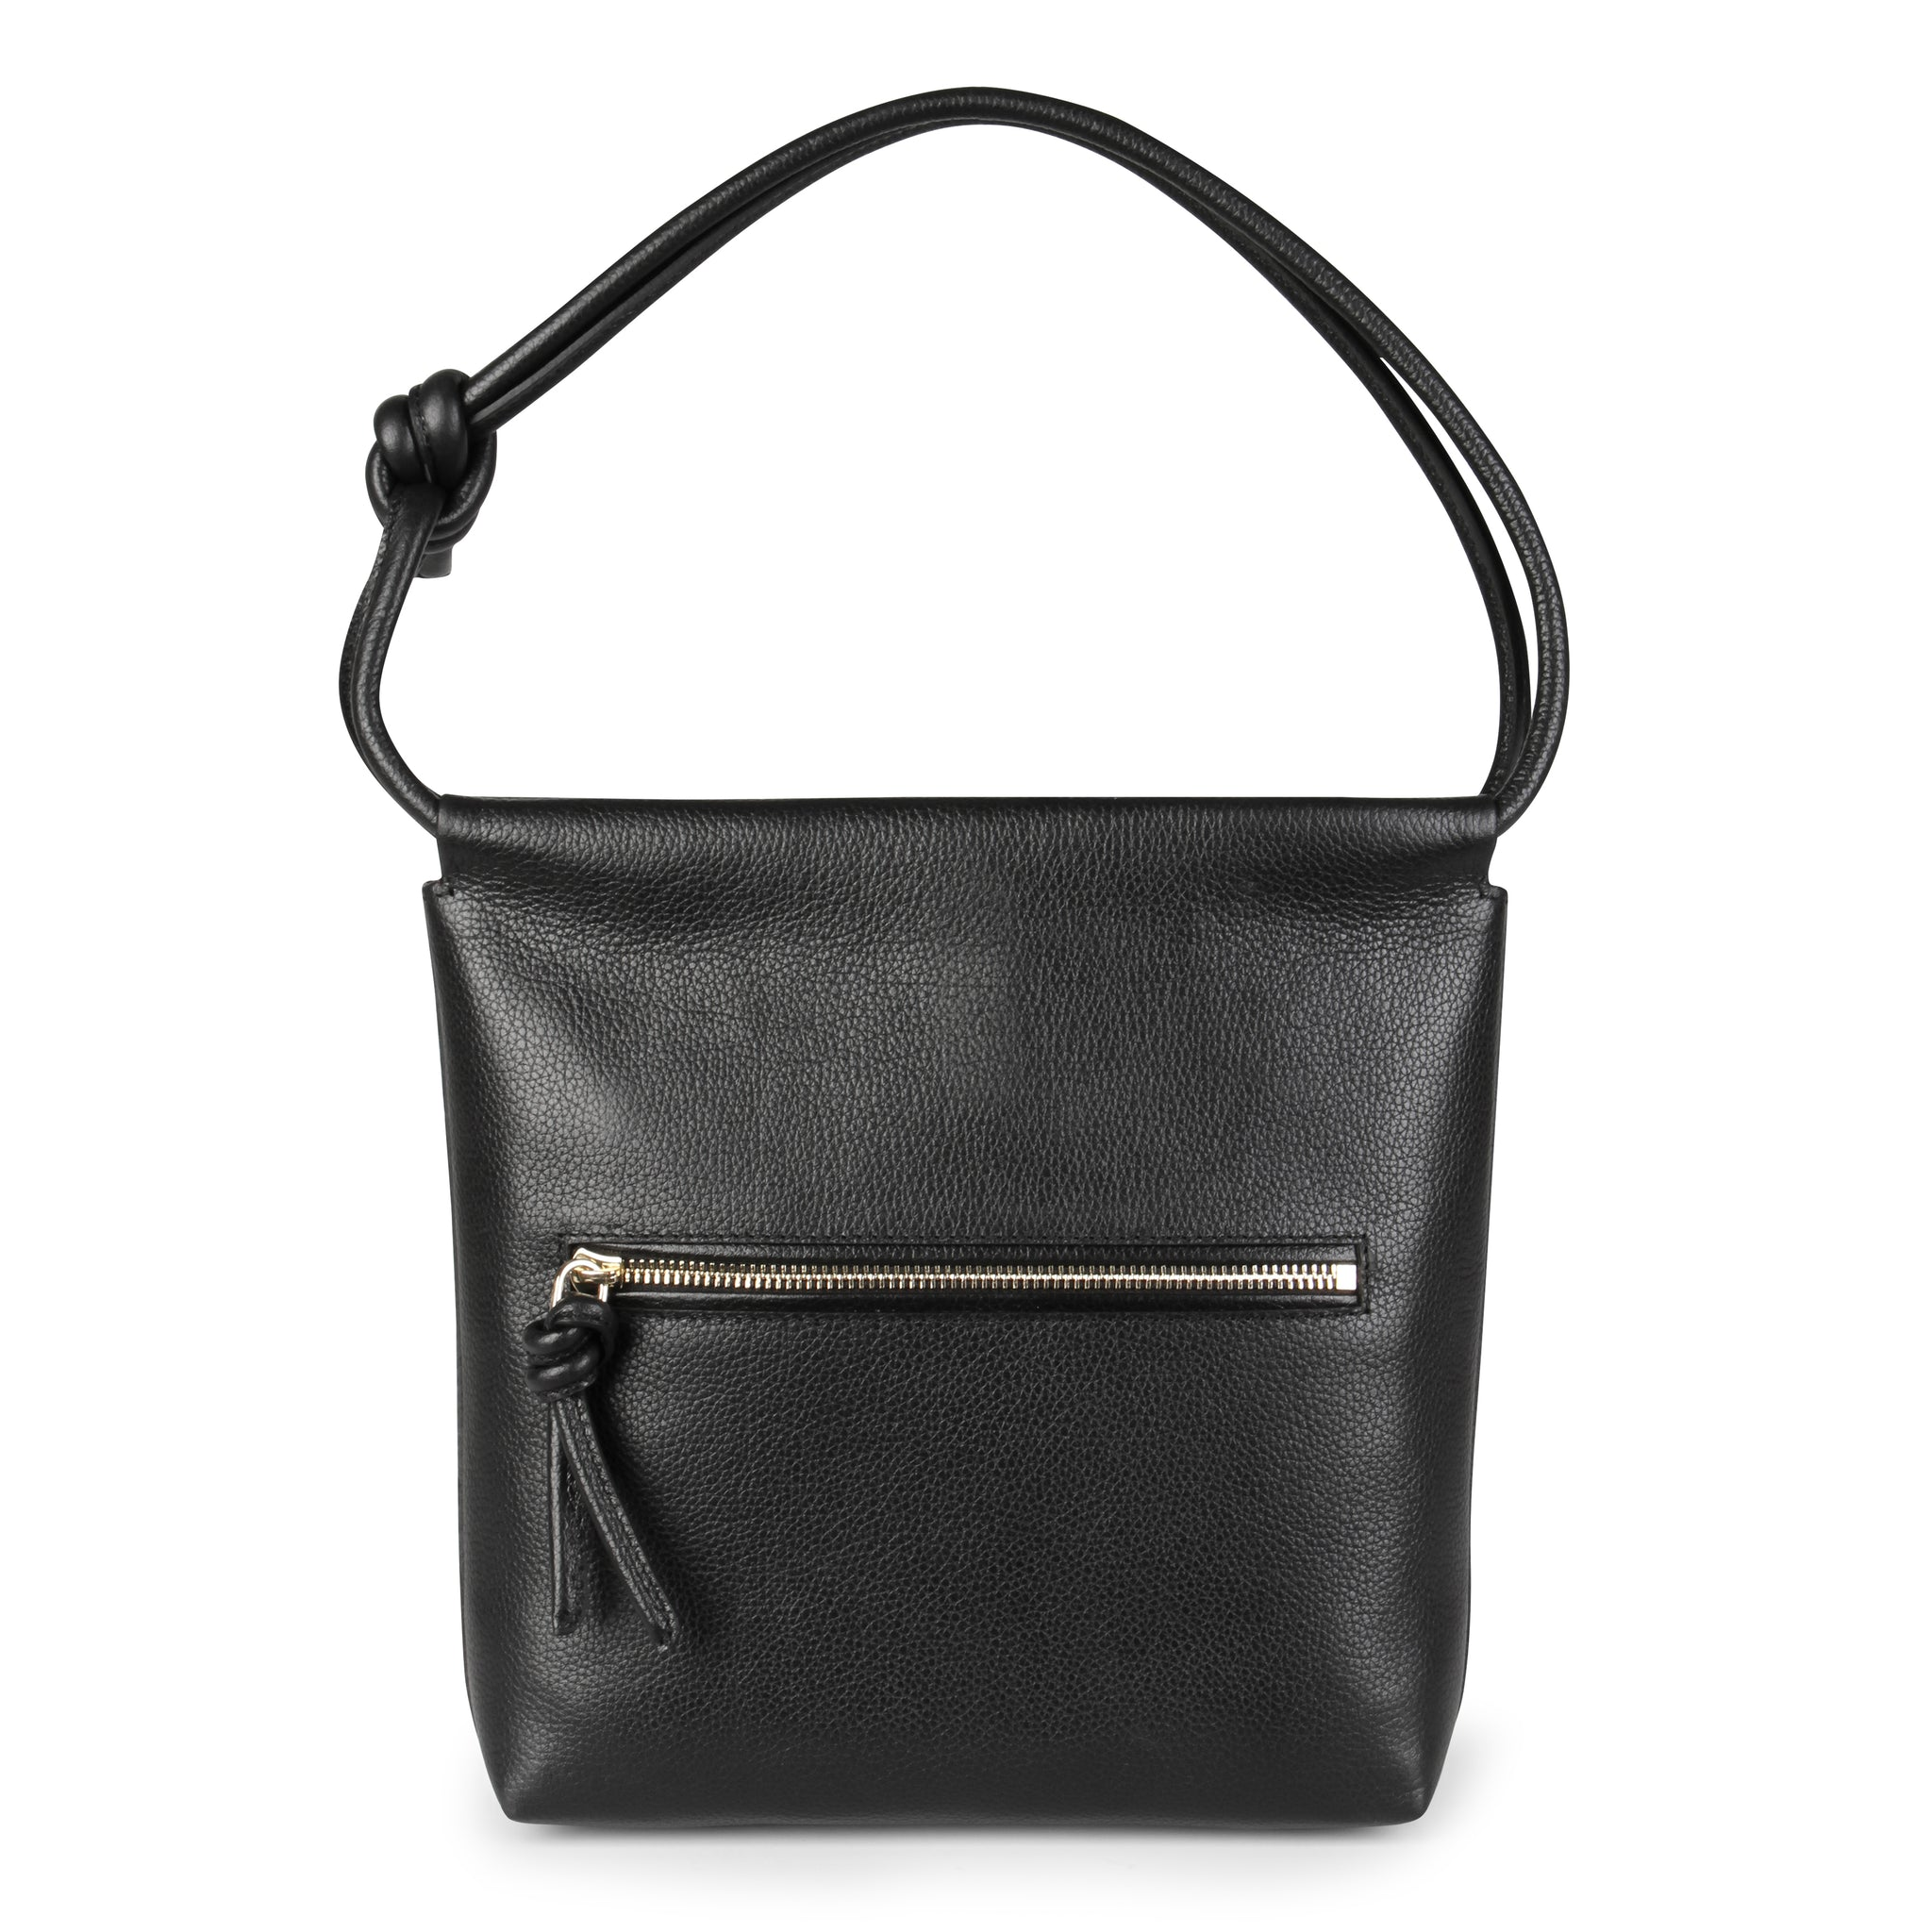 A convertible leather small black shoulder bag with a knot detail on the strap that could be used as a clutch with its roll down feature, back image.